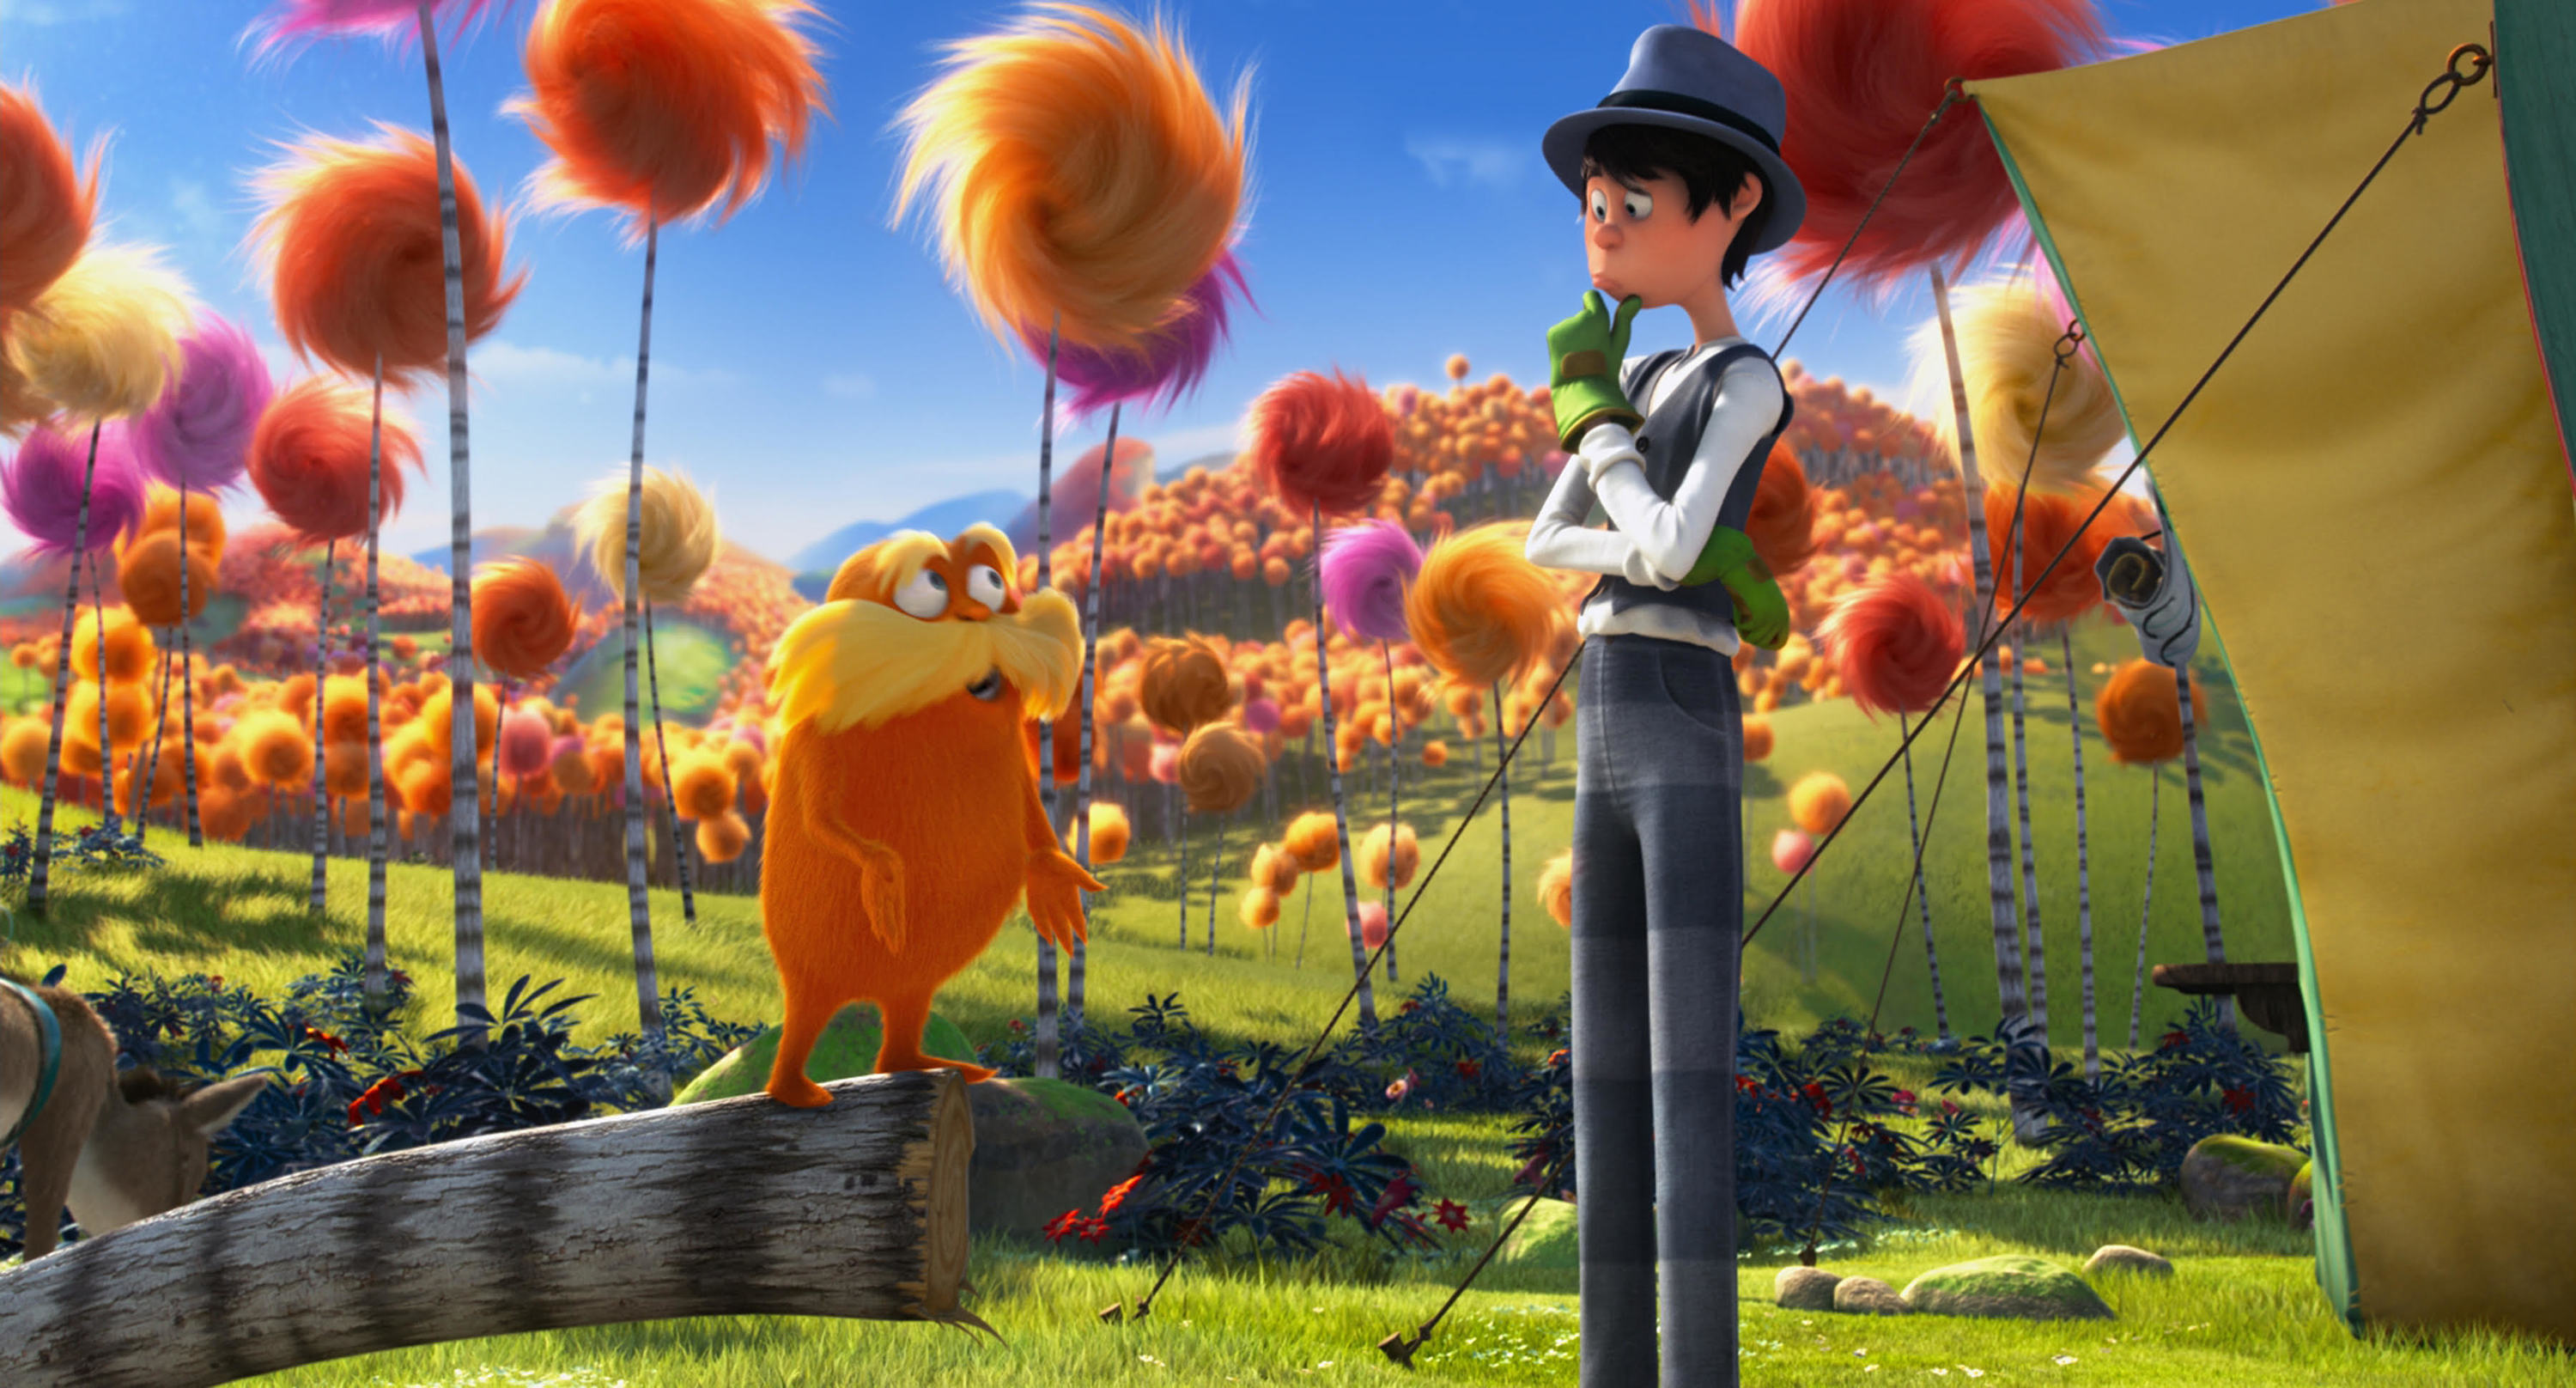 The best new kids' movies on Netflix in July